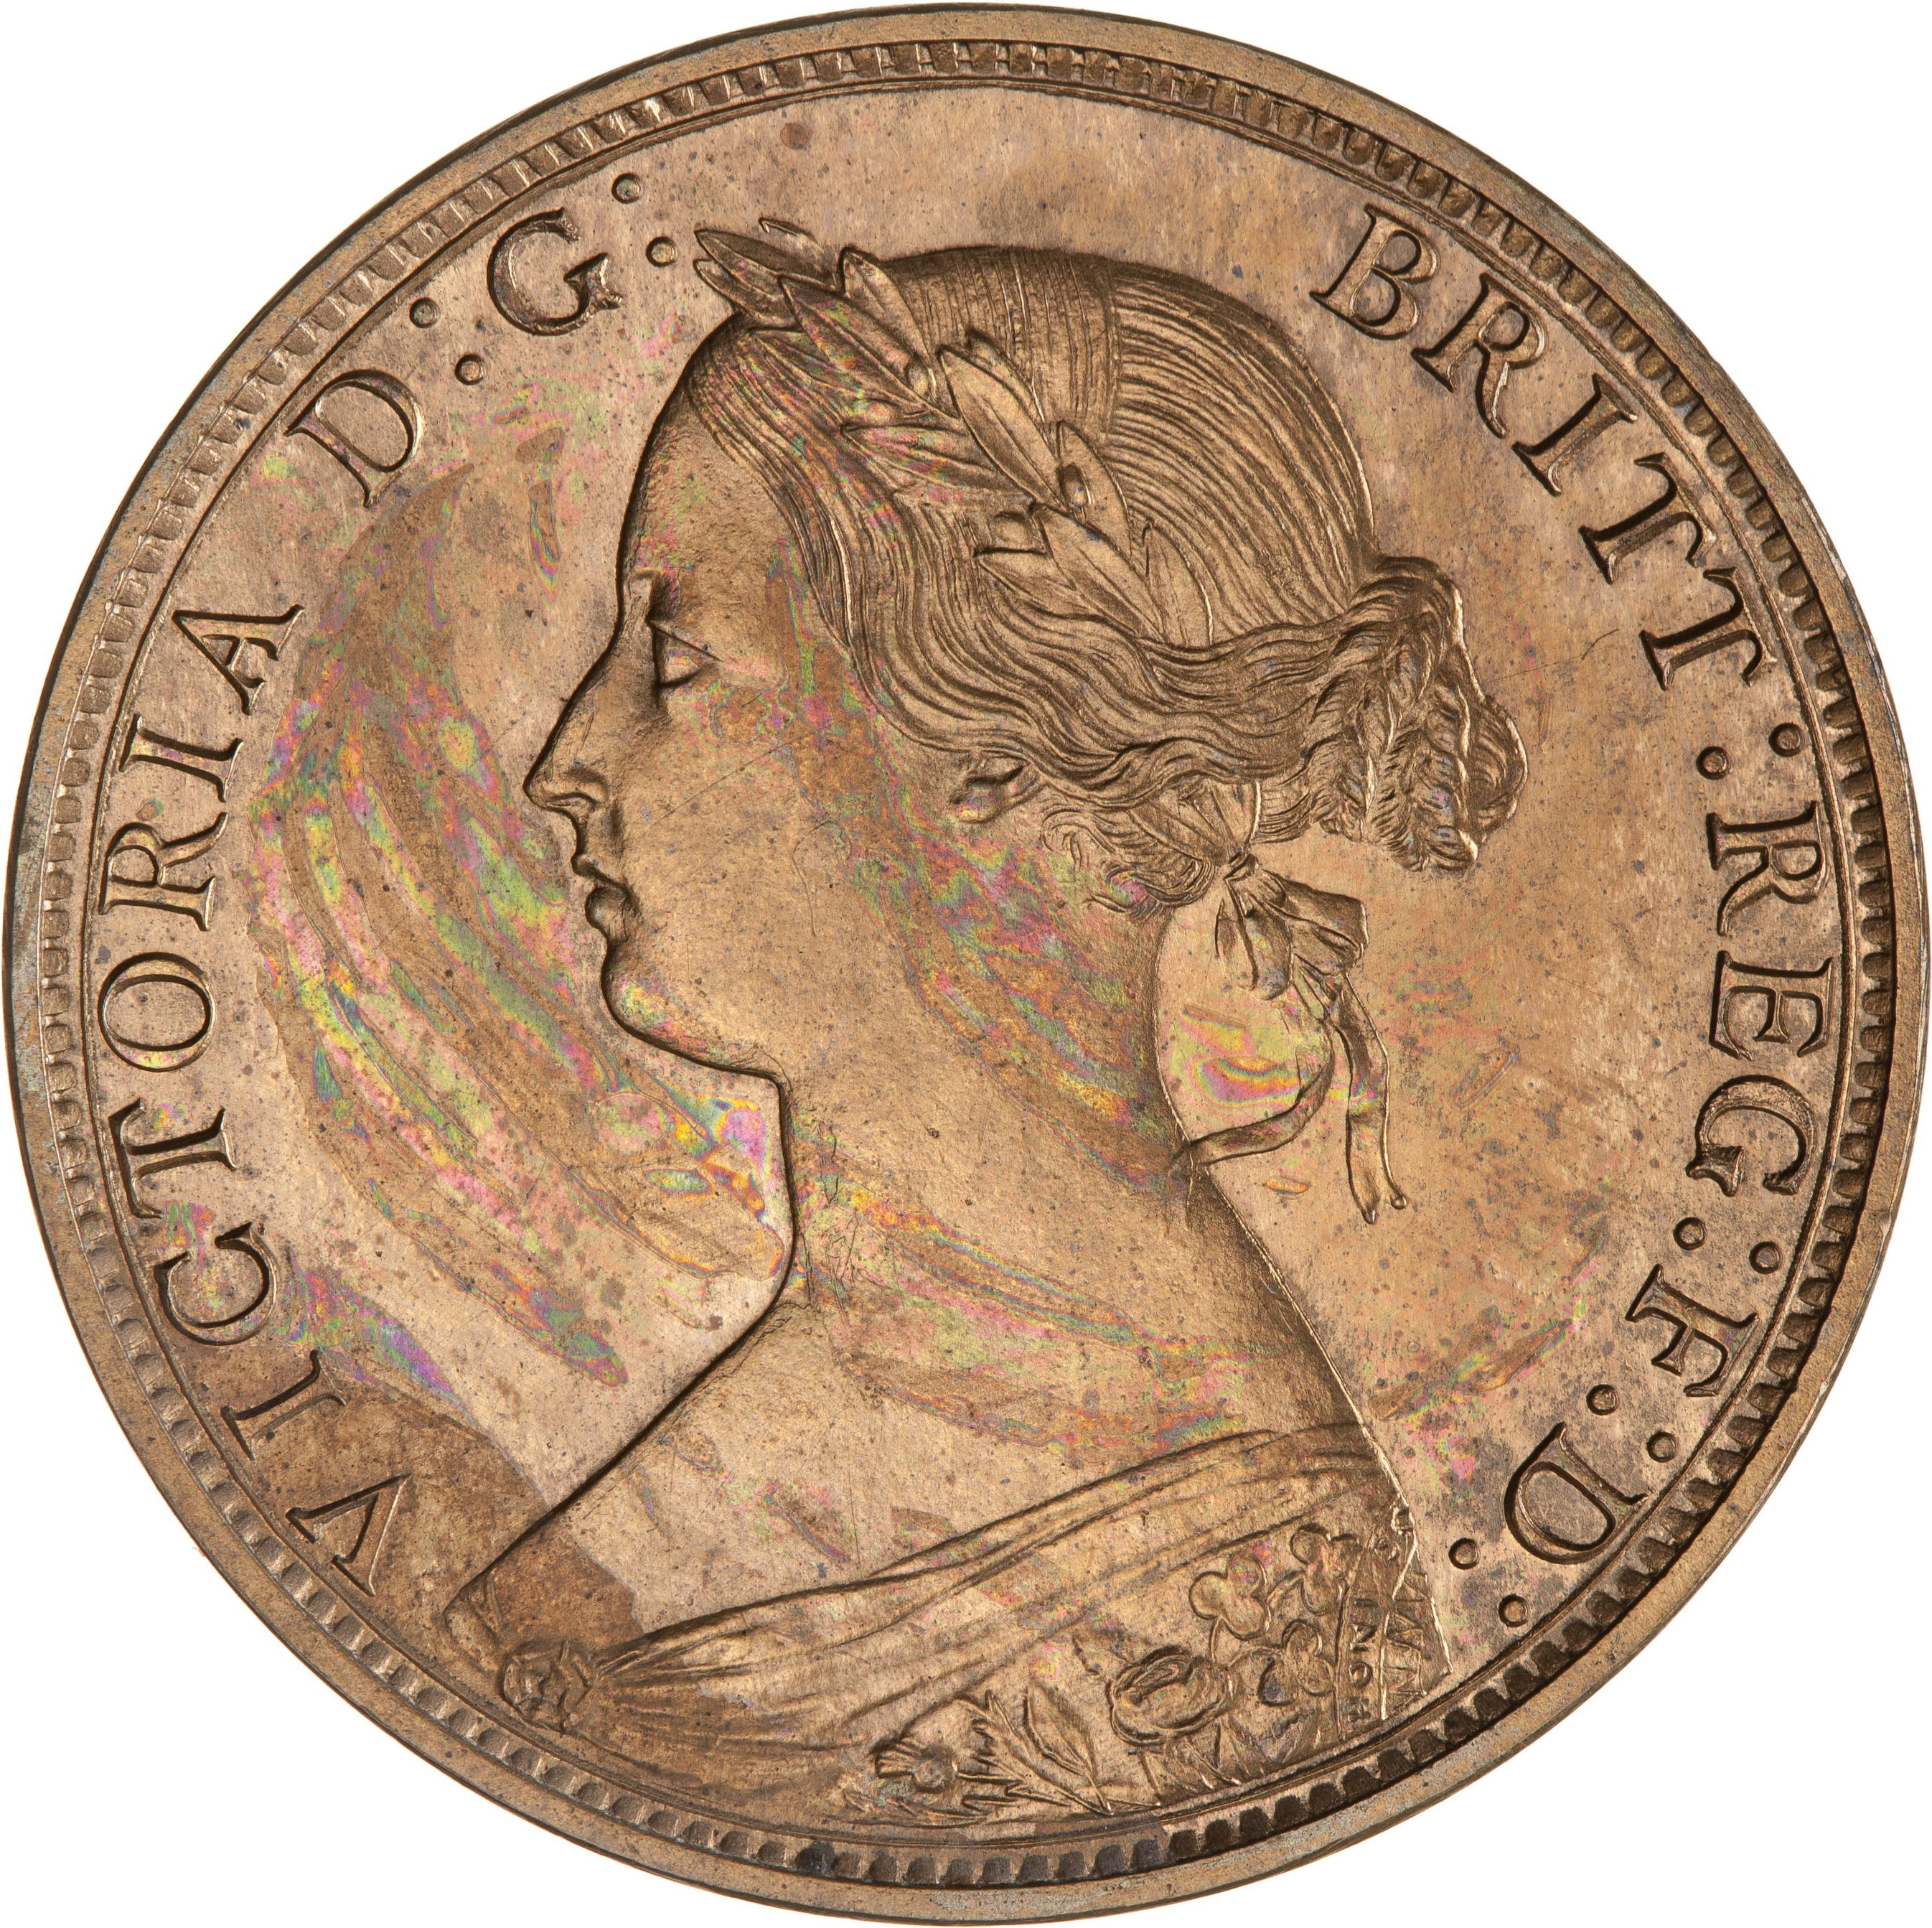 Obverse of 1861 New Brunswick One Cent Proof